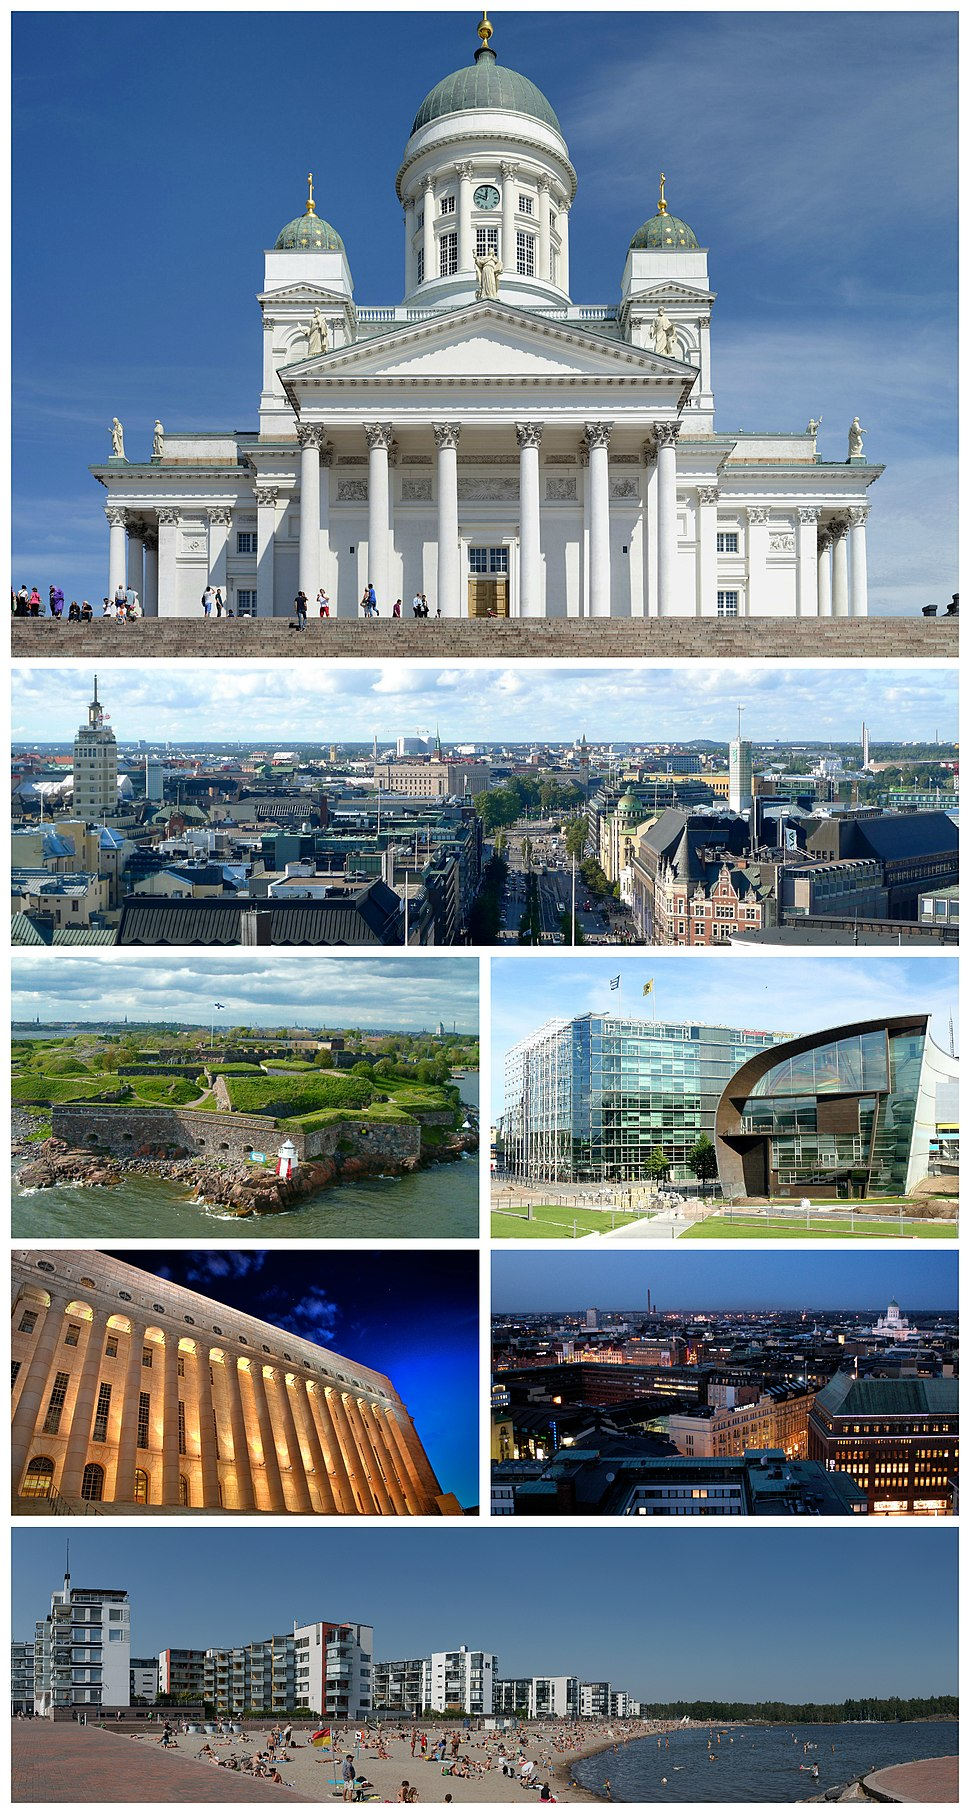 Clockwise from top: Helsinki Cathedral, view of central Helsinki, Sanoma building and Kiasma, Helsinki city centre at night, beaches at Aurinkolahti, Parliament House and Suomenlinna.